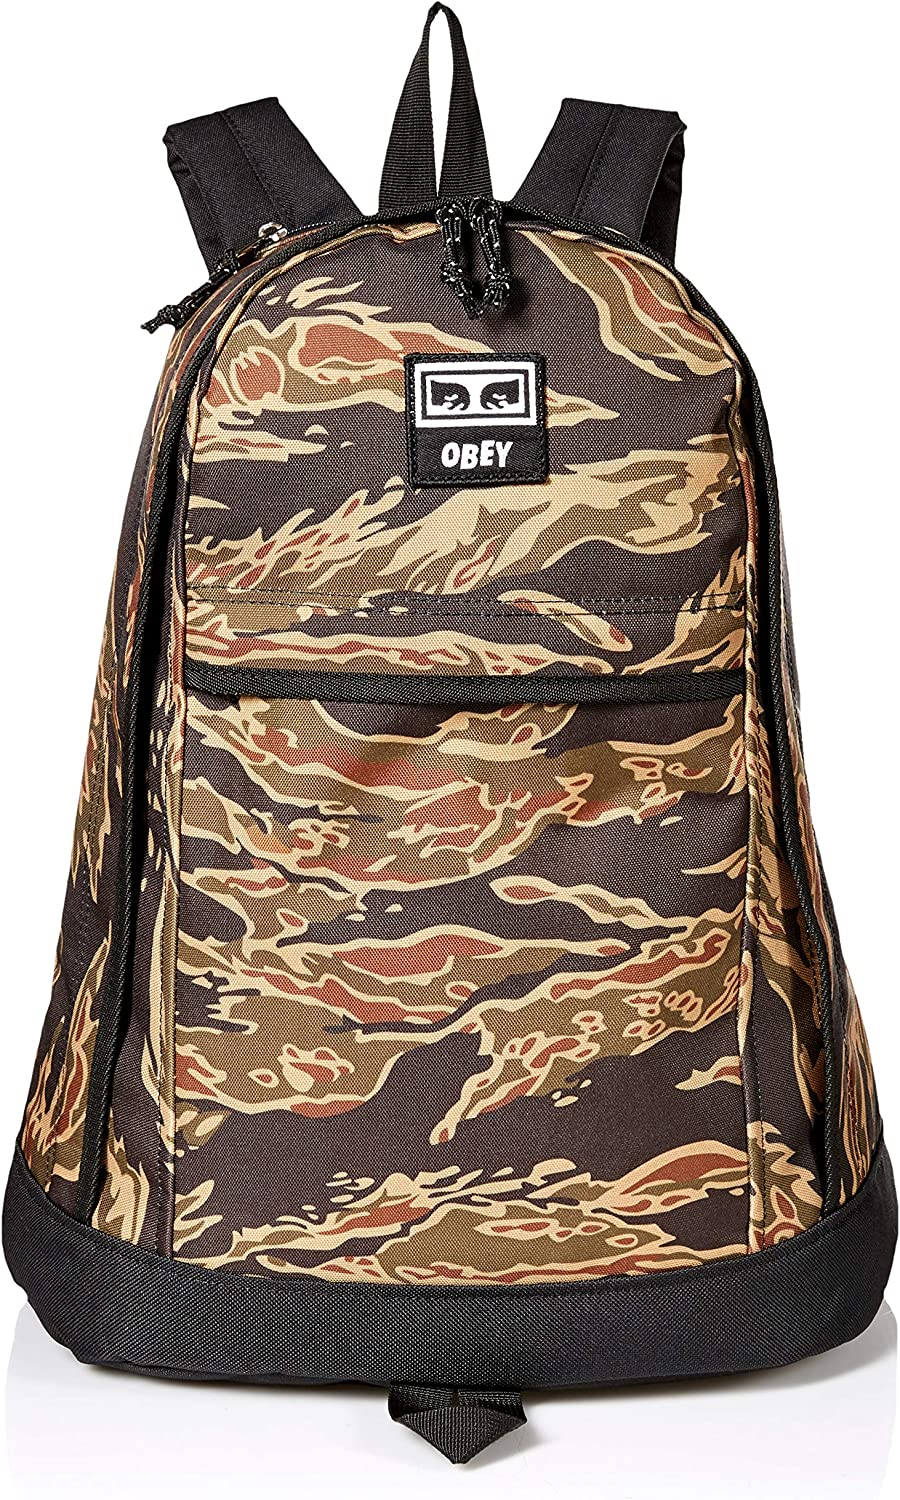 Obey mens 100010099 Obey Dropout Day Pack Backpacks